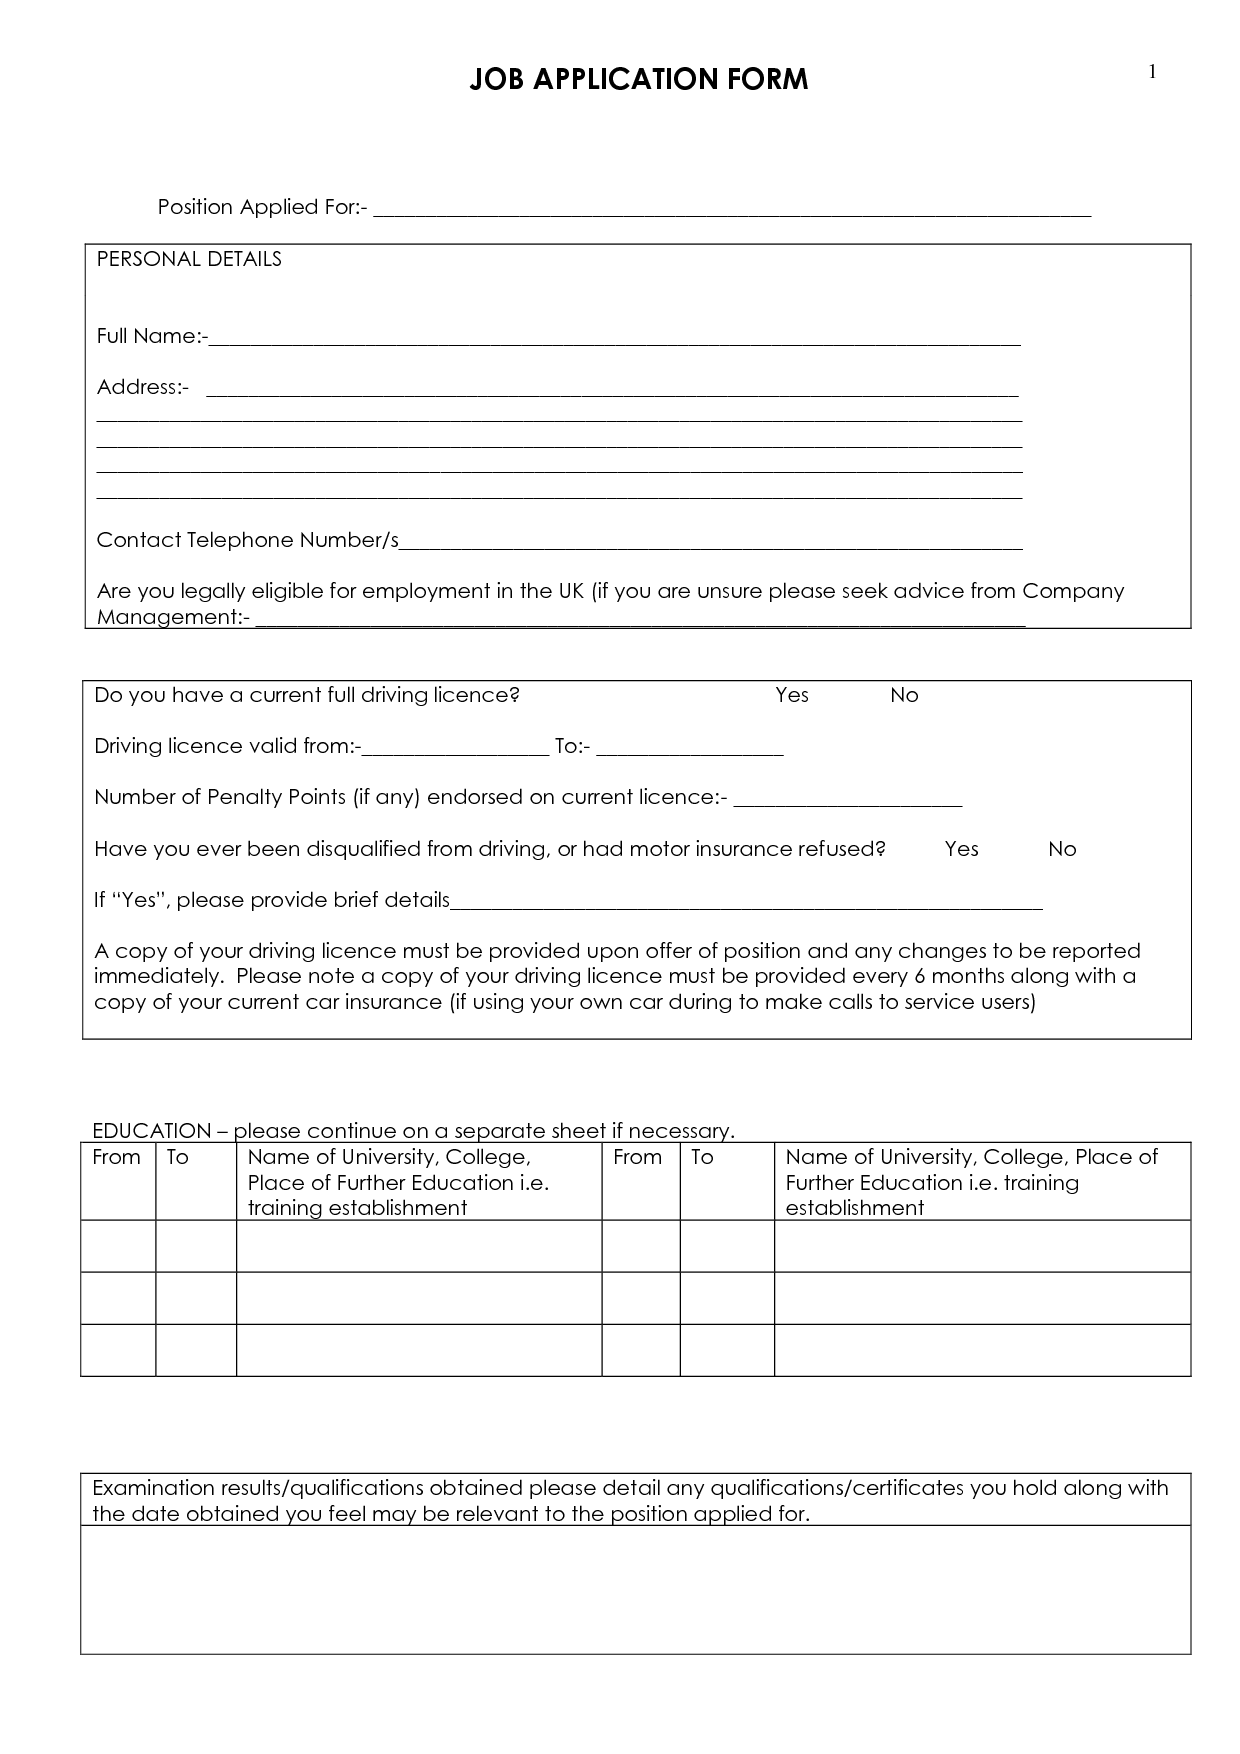 printable blank application for employment application form job application form to print blank job application forms printable